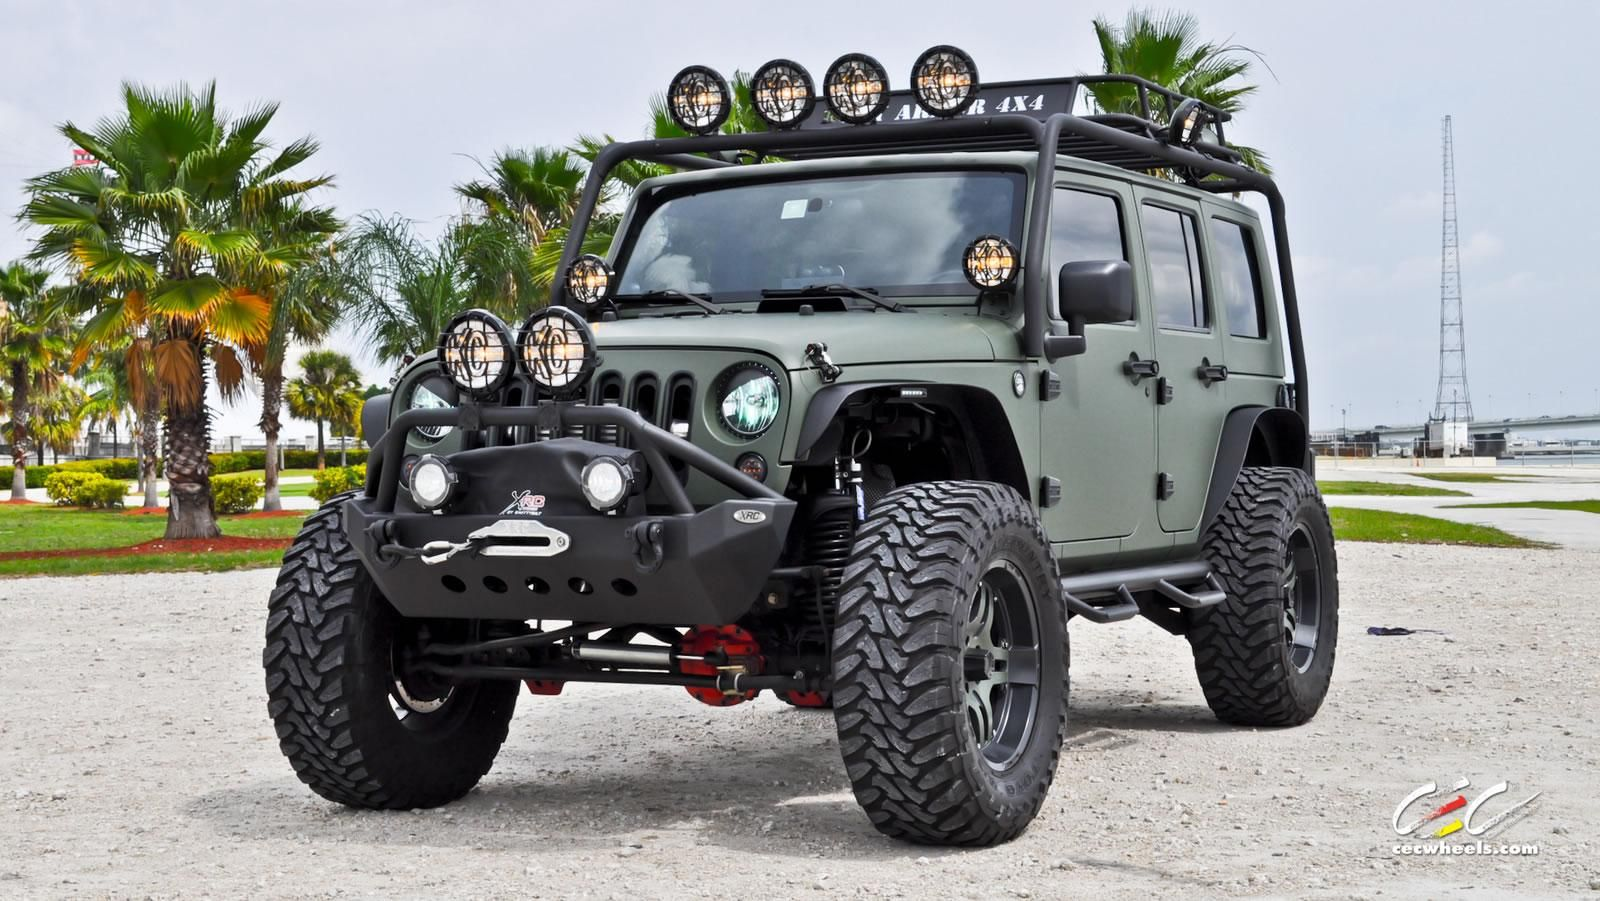 I Love The Lift Kit On This One Shame That Without The Flares It Would Never Get A Roadworthy Certificate Here In Aus Green Jeep Wrangler Green Jeep Custom Jeep